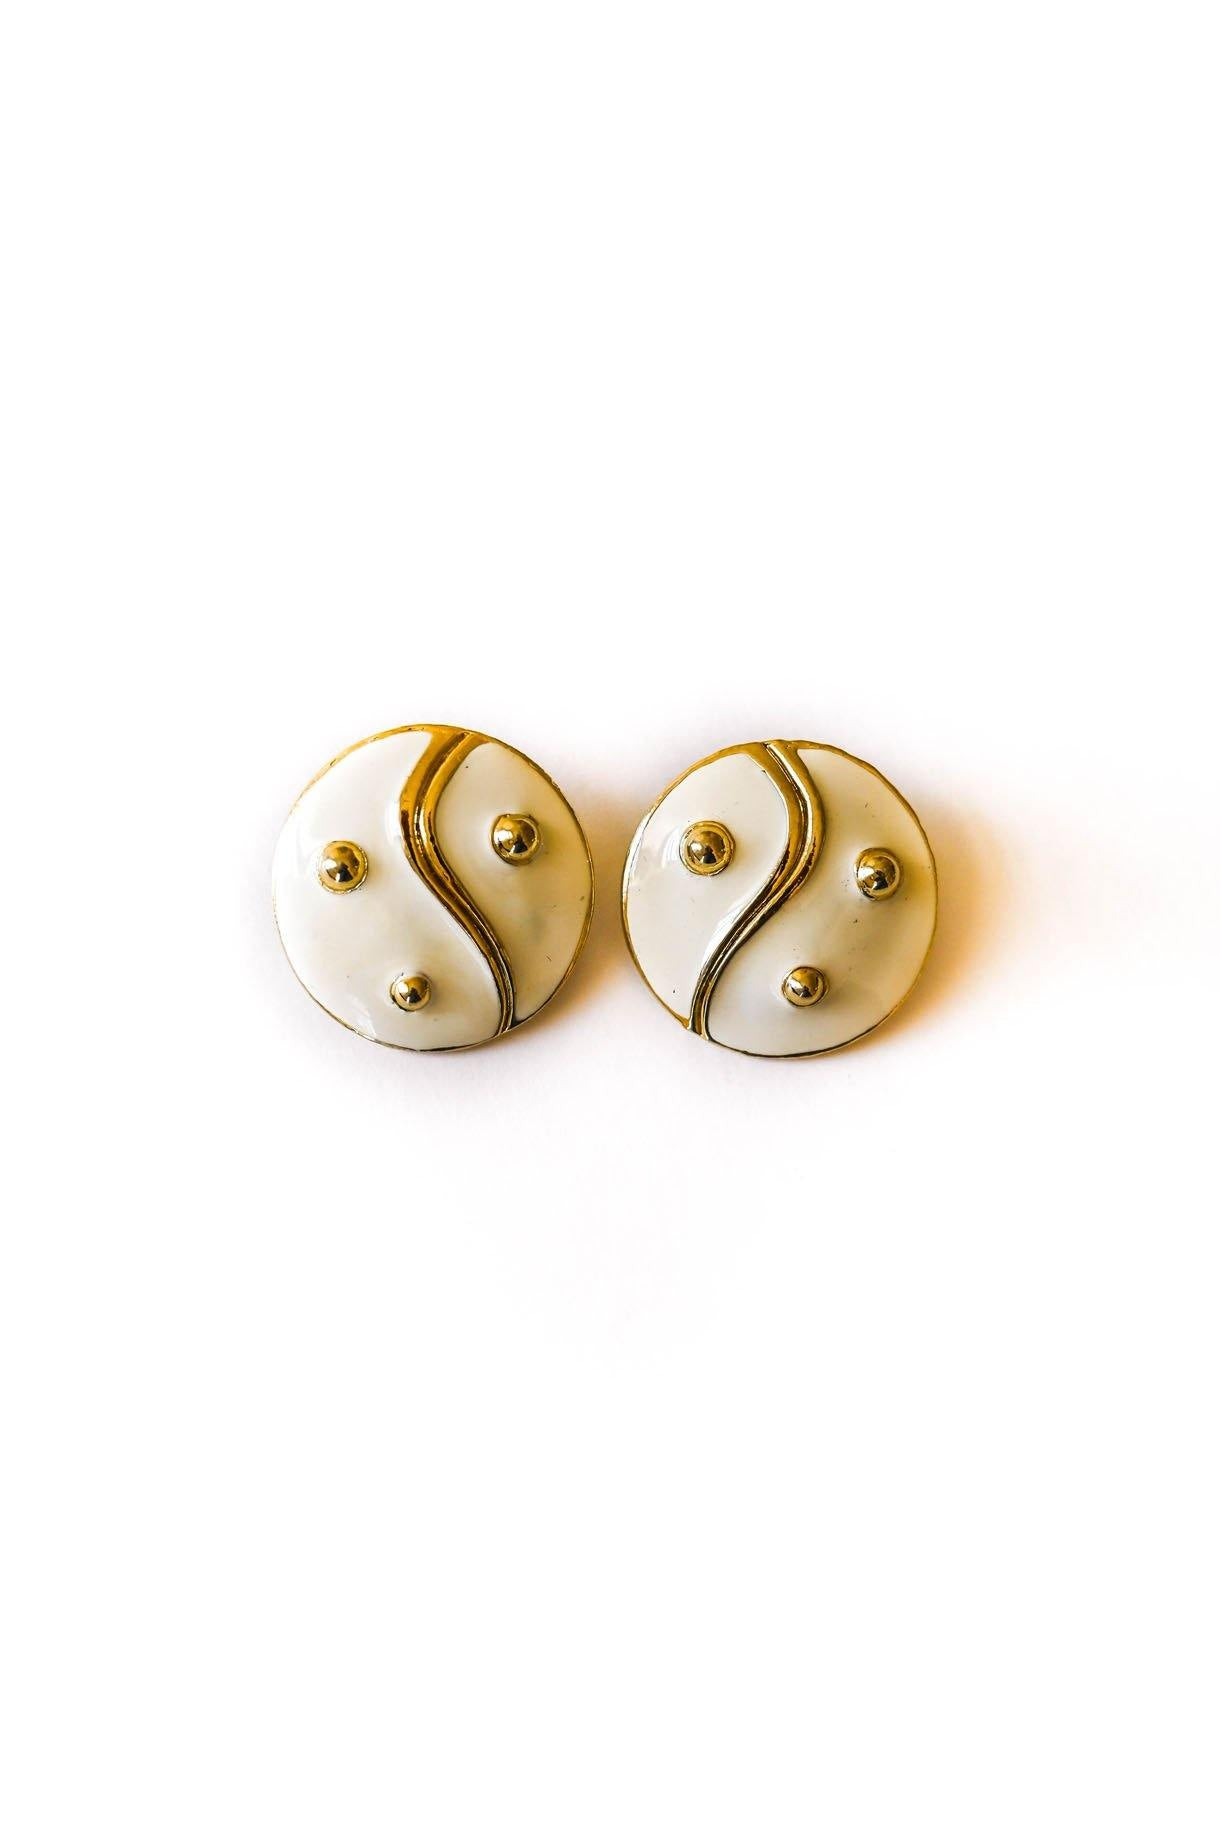 Yin Yang Clip-on Earrings